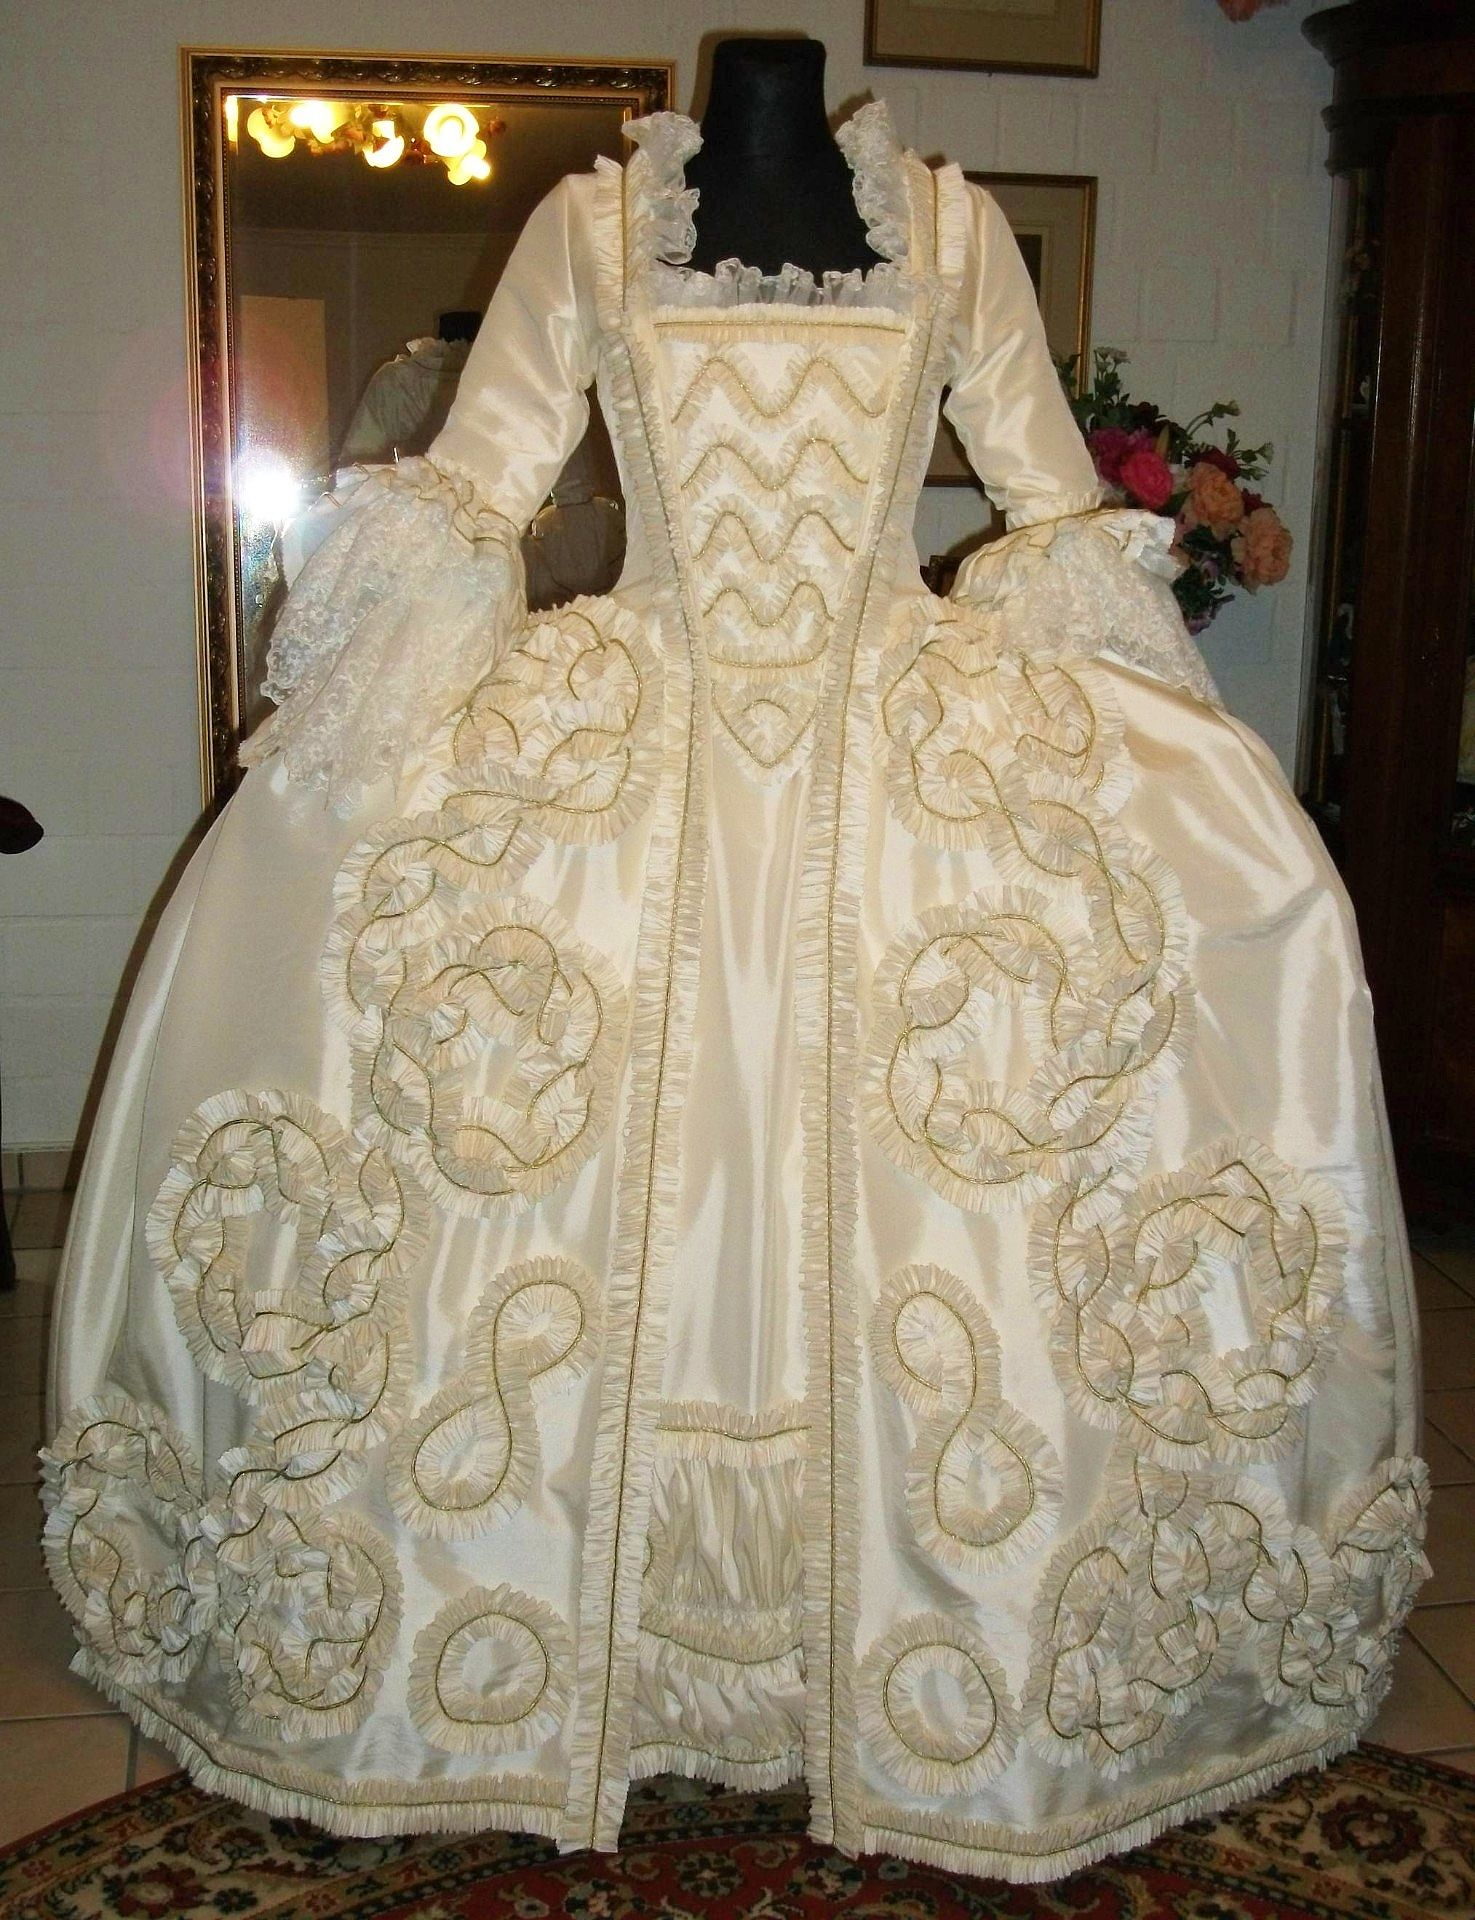 Rokoko kleid | 18th century dresses | Pinterest | Rokoko, Barock ...